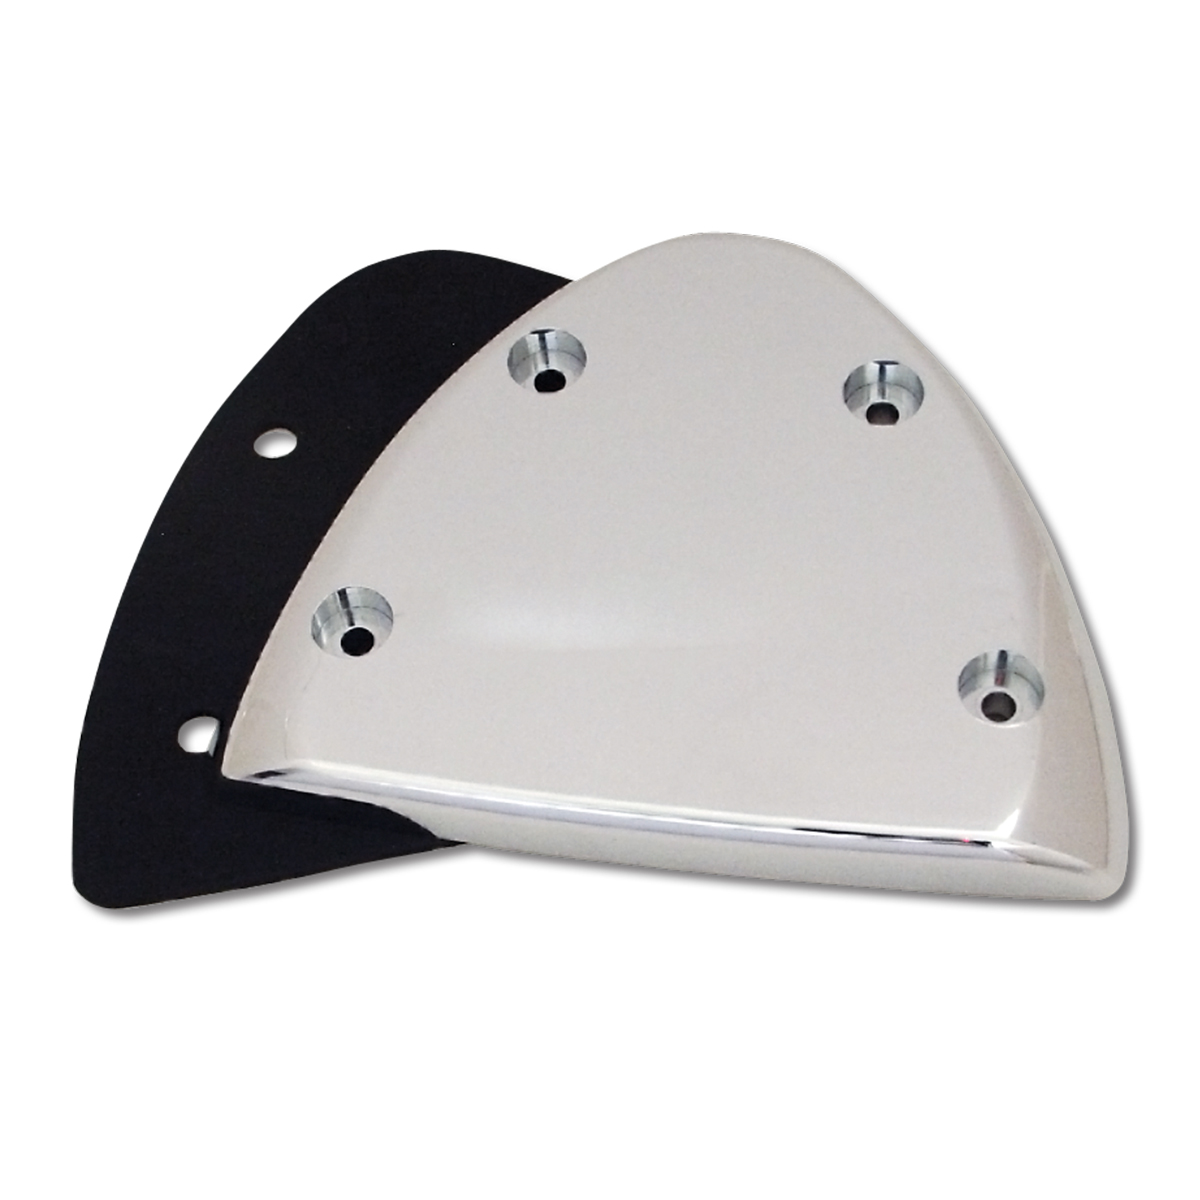 Headlight Blinker Cover for Pete Single & Dual Headlights